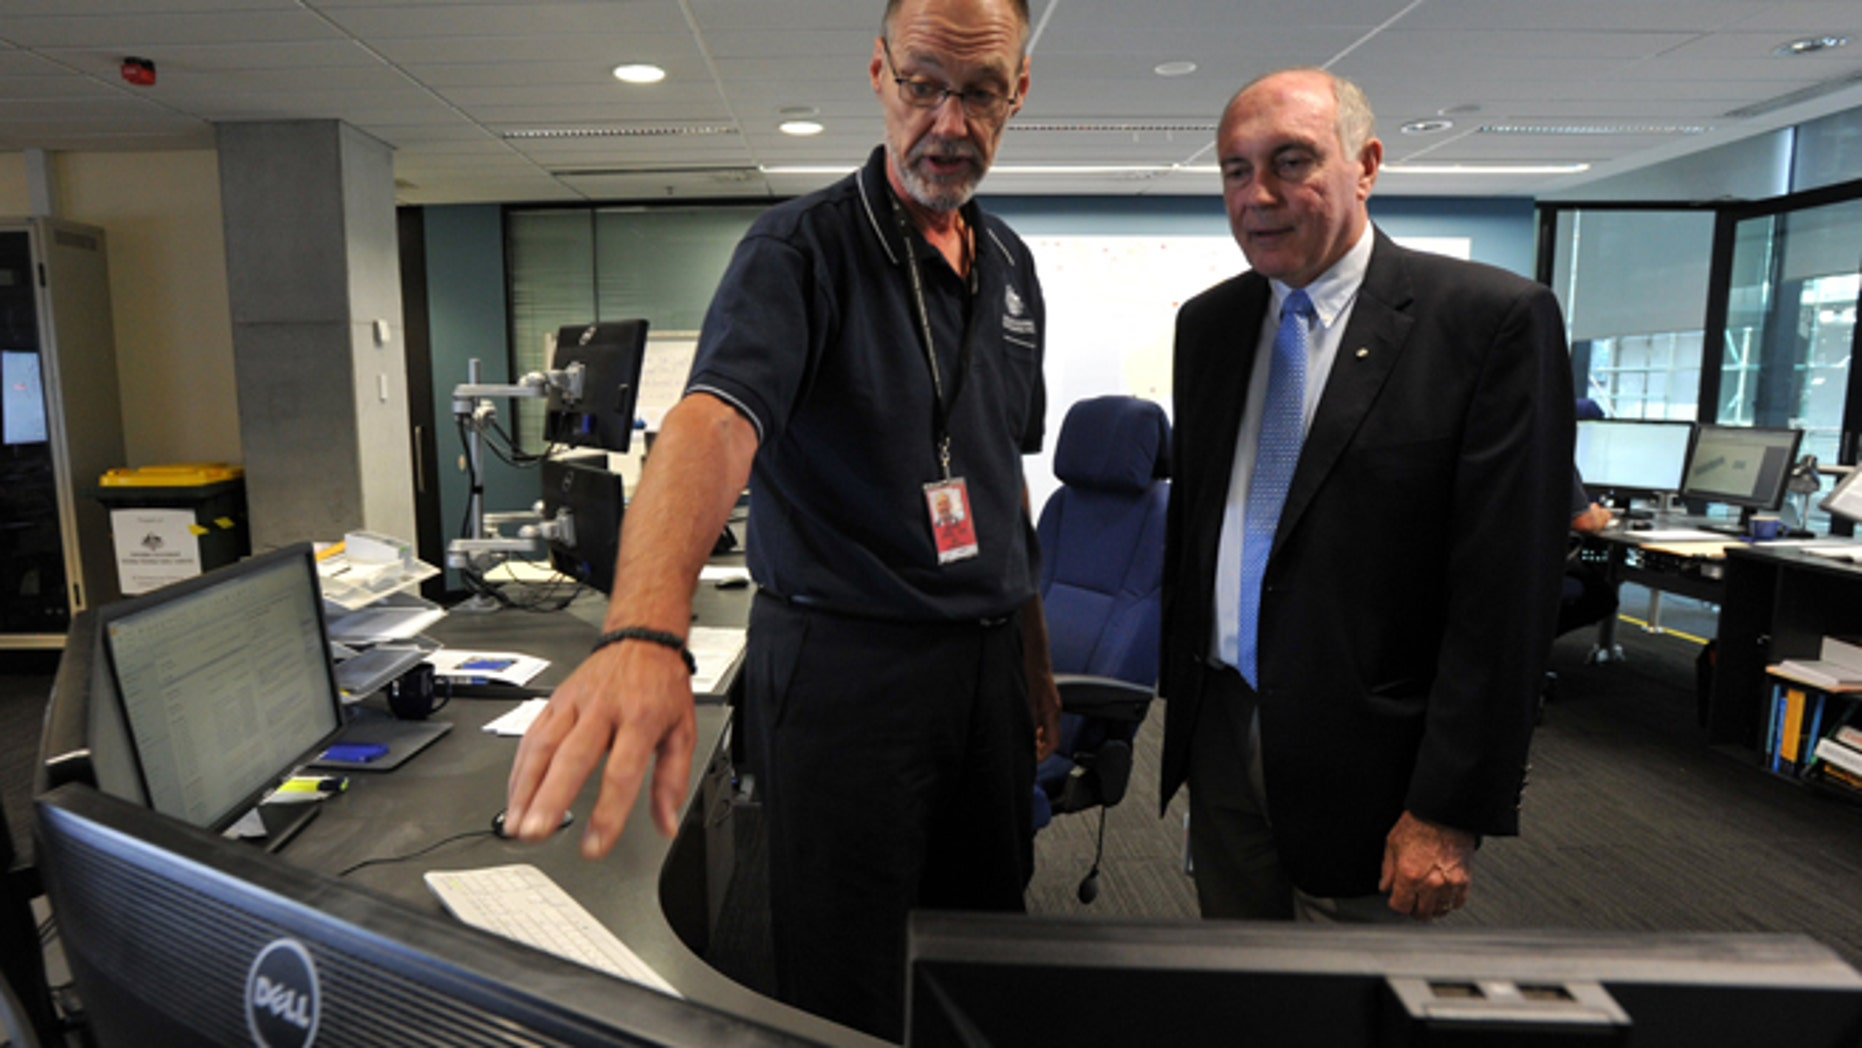 In this March 23, 2014 photo, Australian Deputy Prime Minister Warren Truss, right, talks with John Rice, senior search and rescue officer and mission coordinator for the search for the missing Malaysia Airlines Flight MH370, at rescue coordination center of the Australian Maritime Safety Authority in Canberra. Just weeks before the hunt for the missing Malaysian airliner is set to resume, an Australian official said Thursday, Aug. 28, that the sprawling search area in the southern Indian Ocean may be extended farther south based on a new analysis of a failed attempt to call the plane by satellite phone.